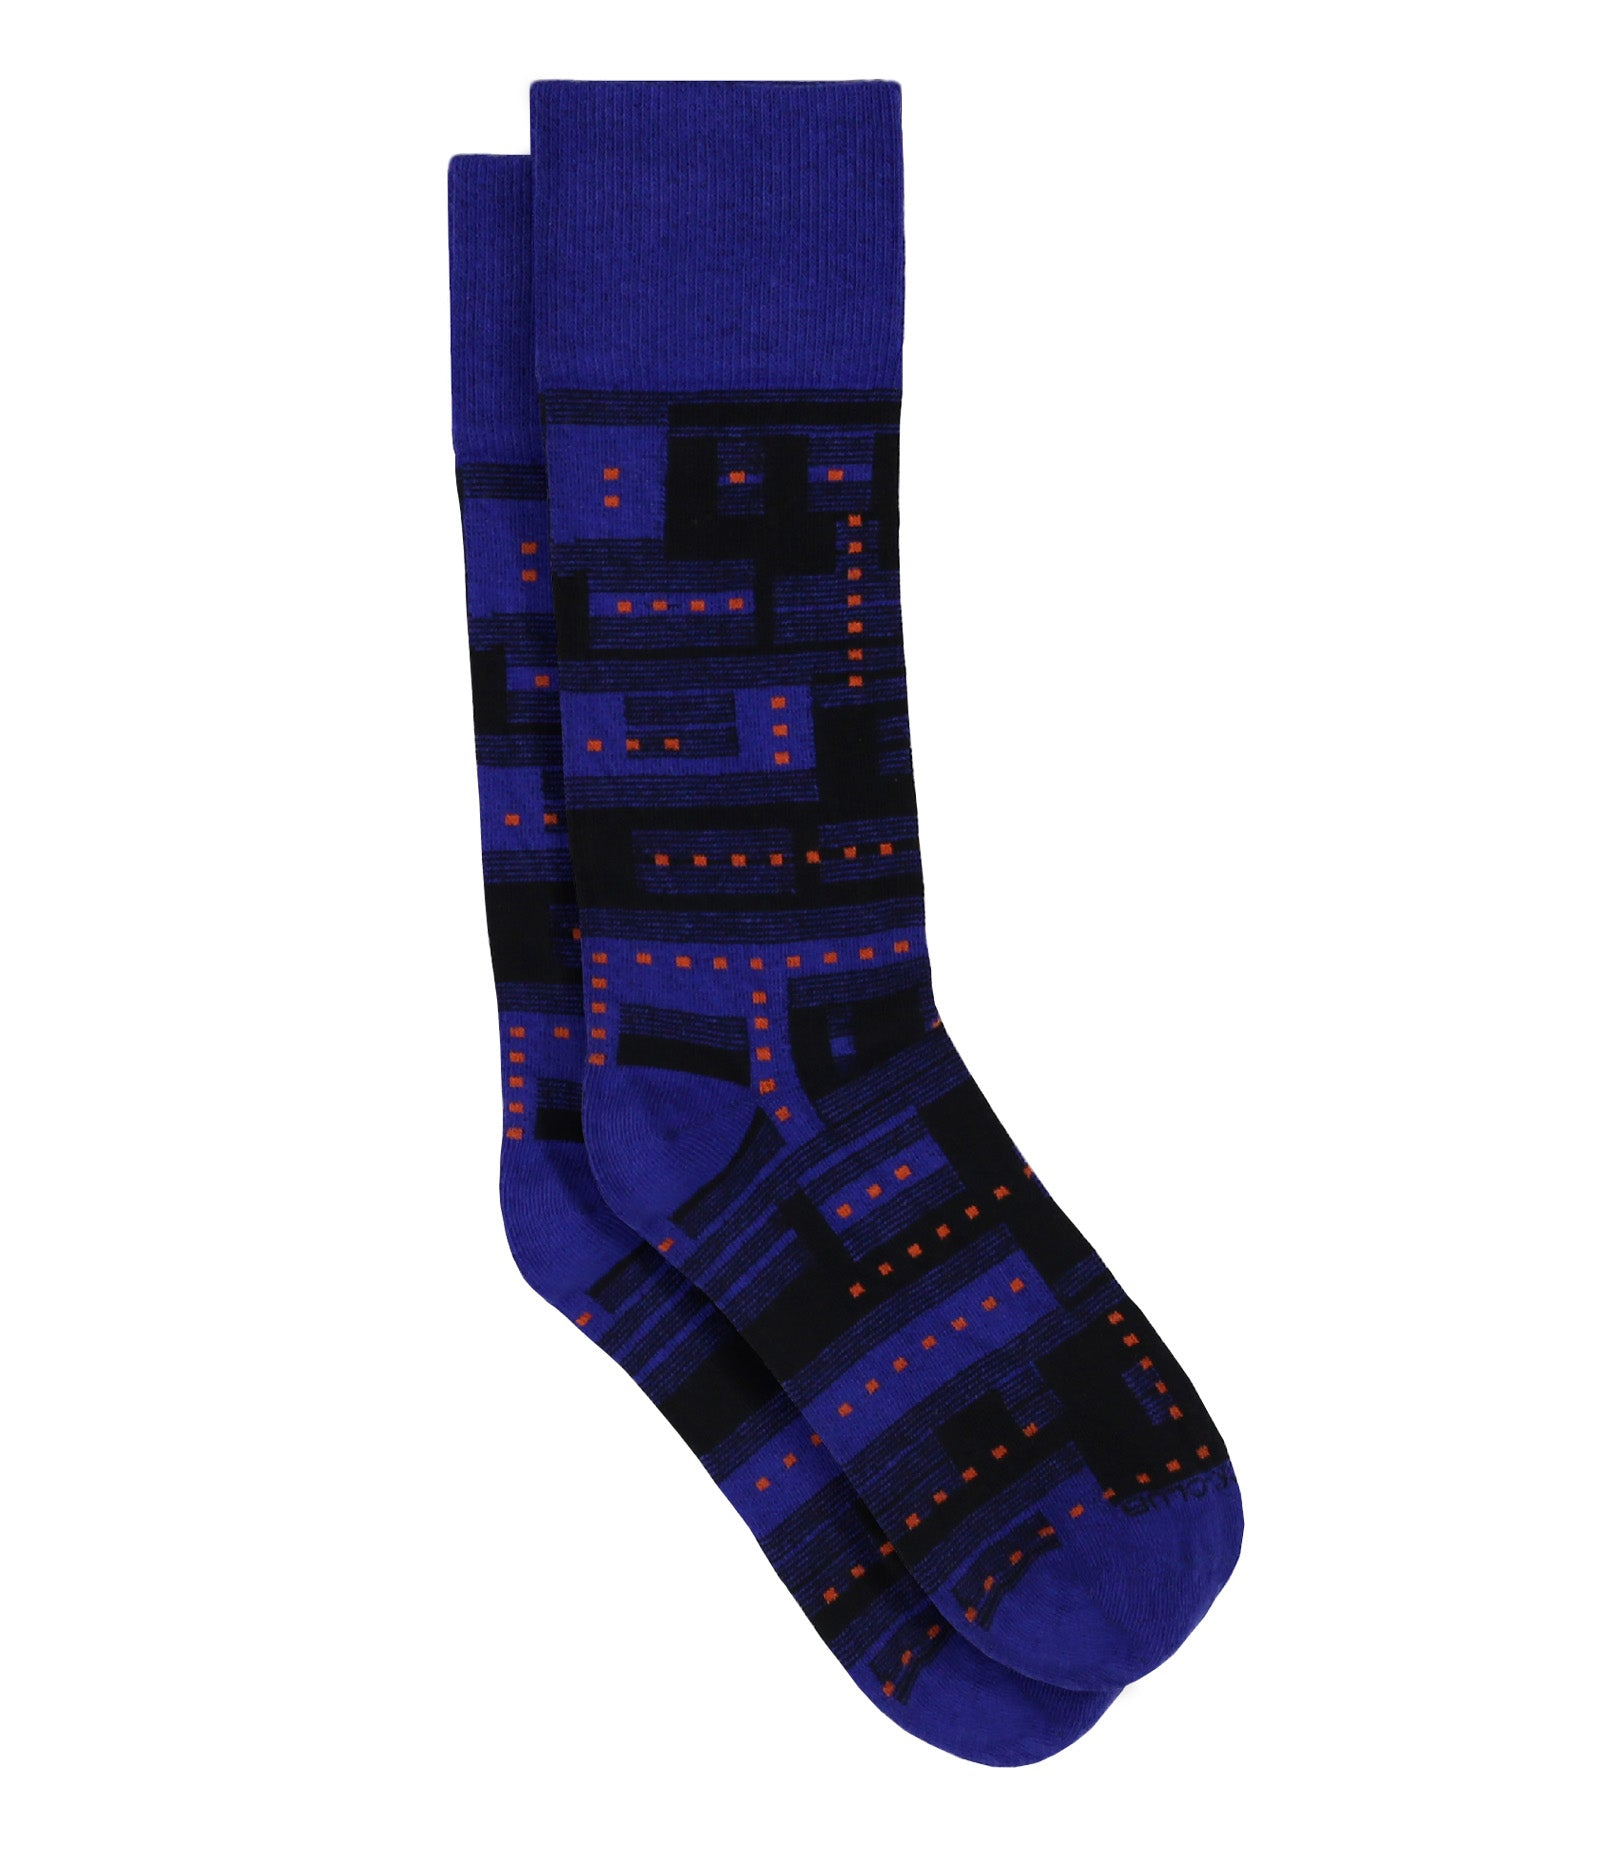 The Glitch - Ultramarine - Sock Club Store